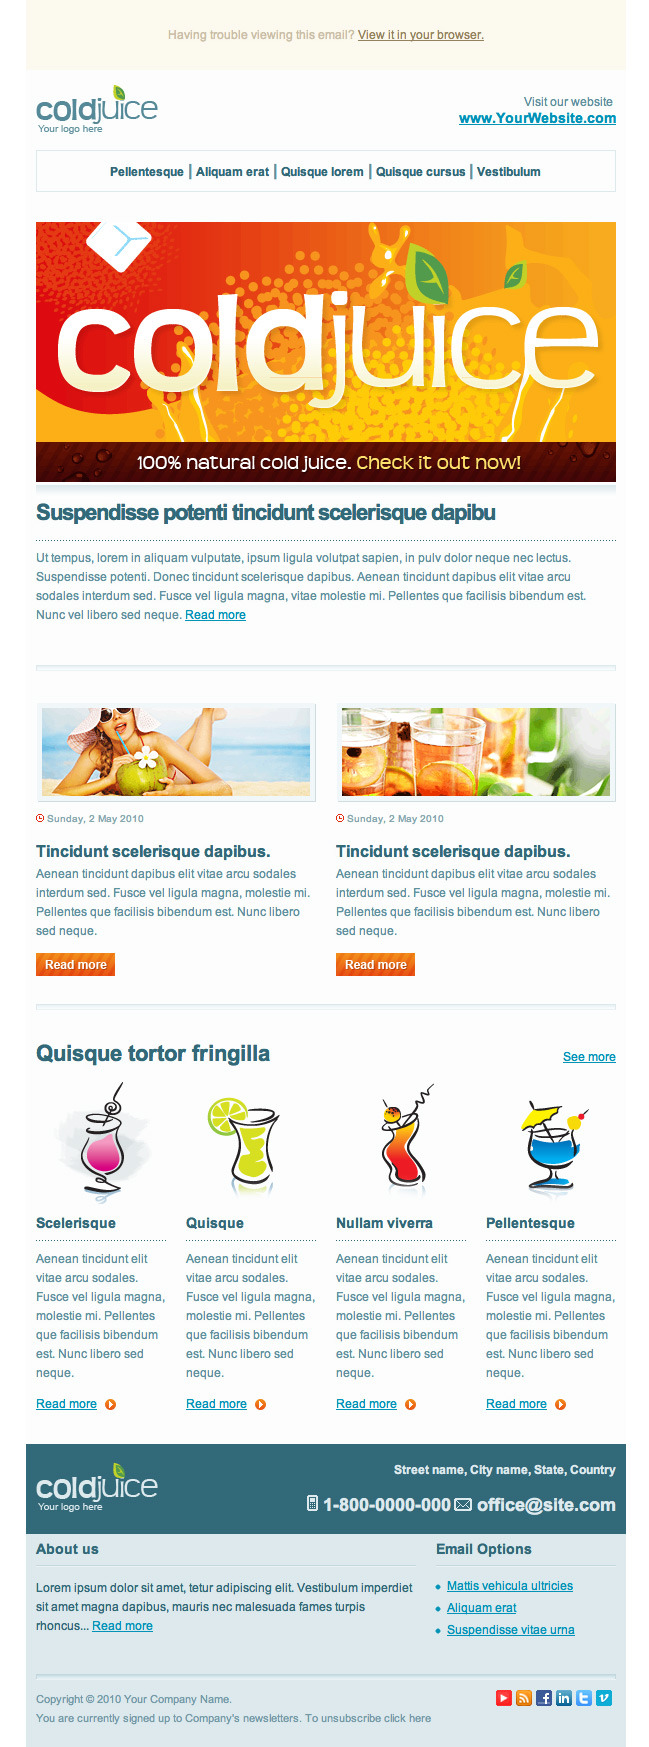 ColdJuice - Professional Email Templates